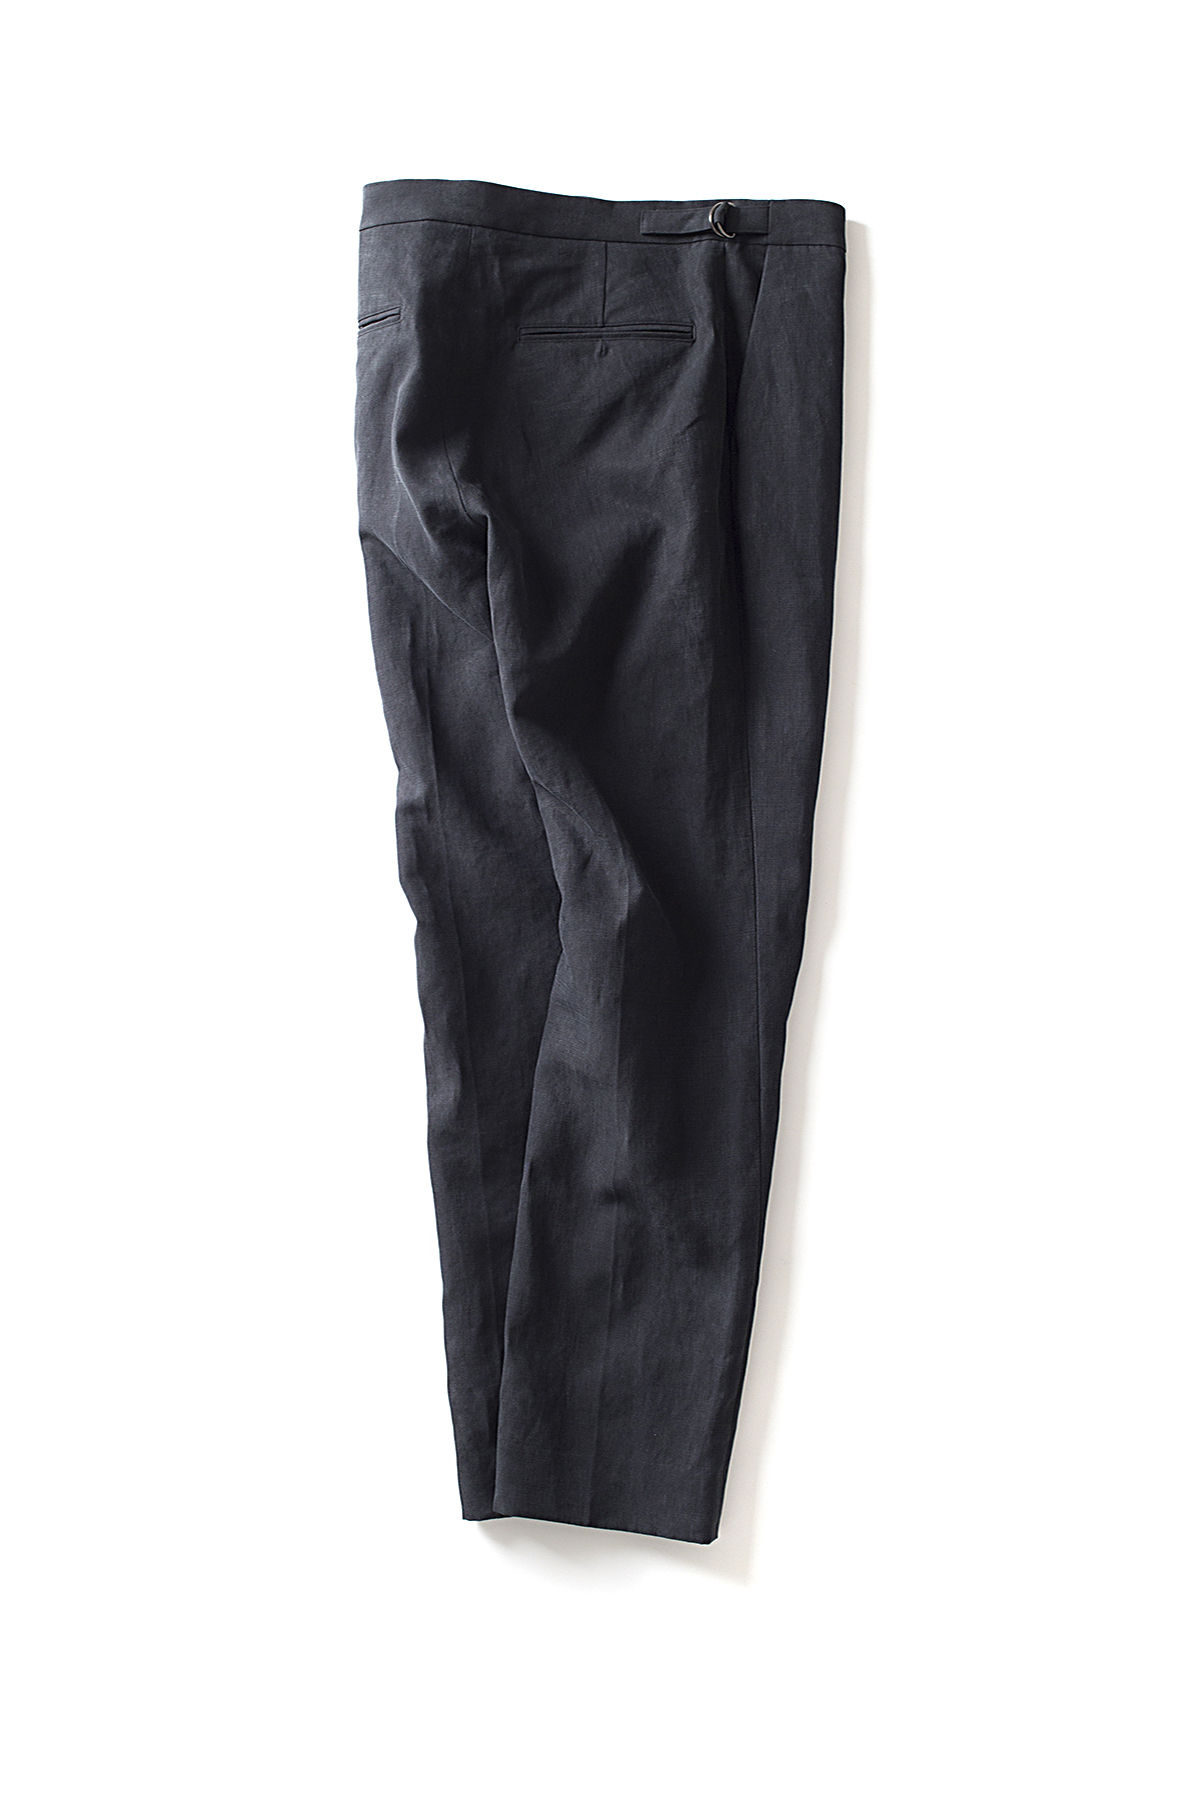 Auralee : Washed Linen Slacks (Black)